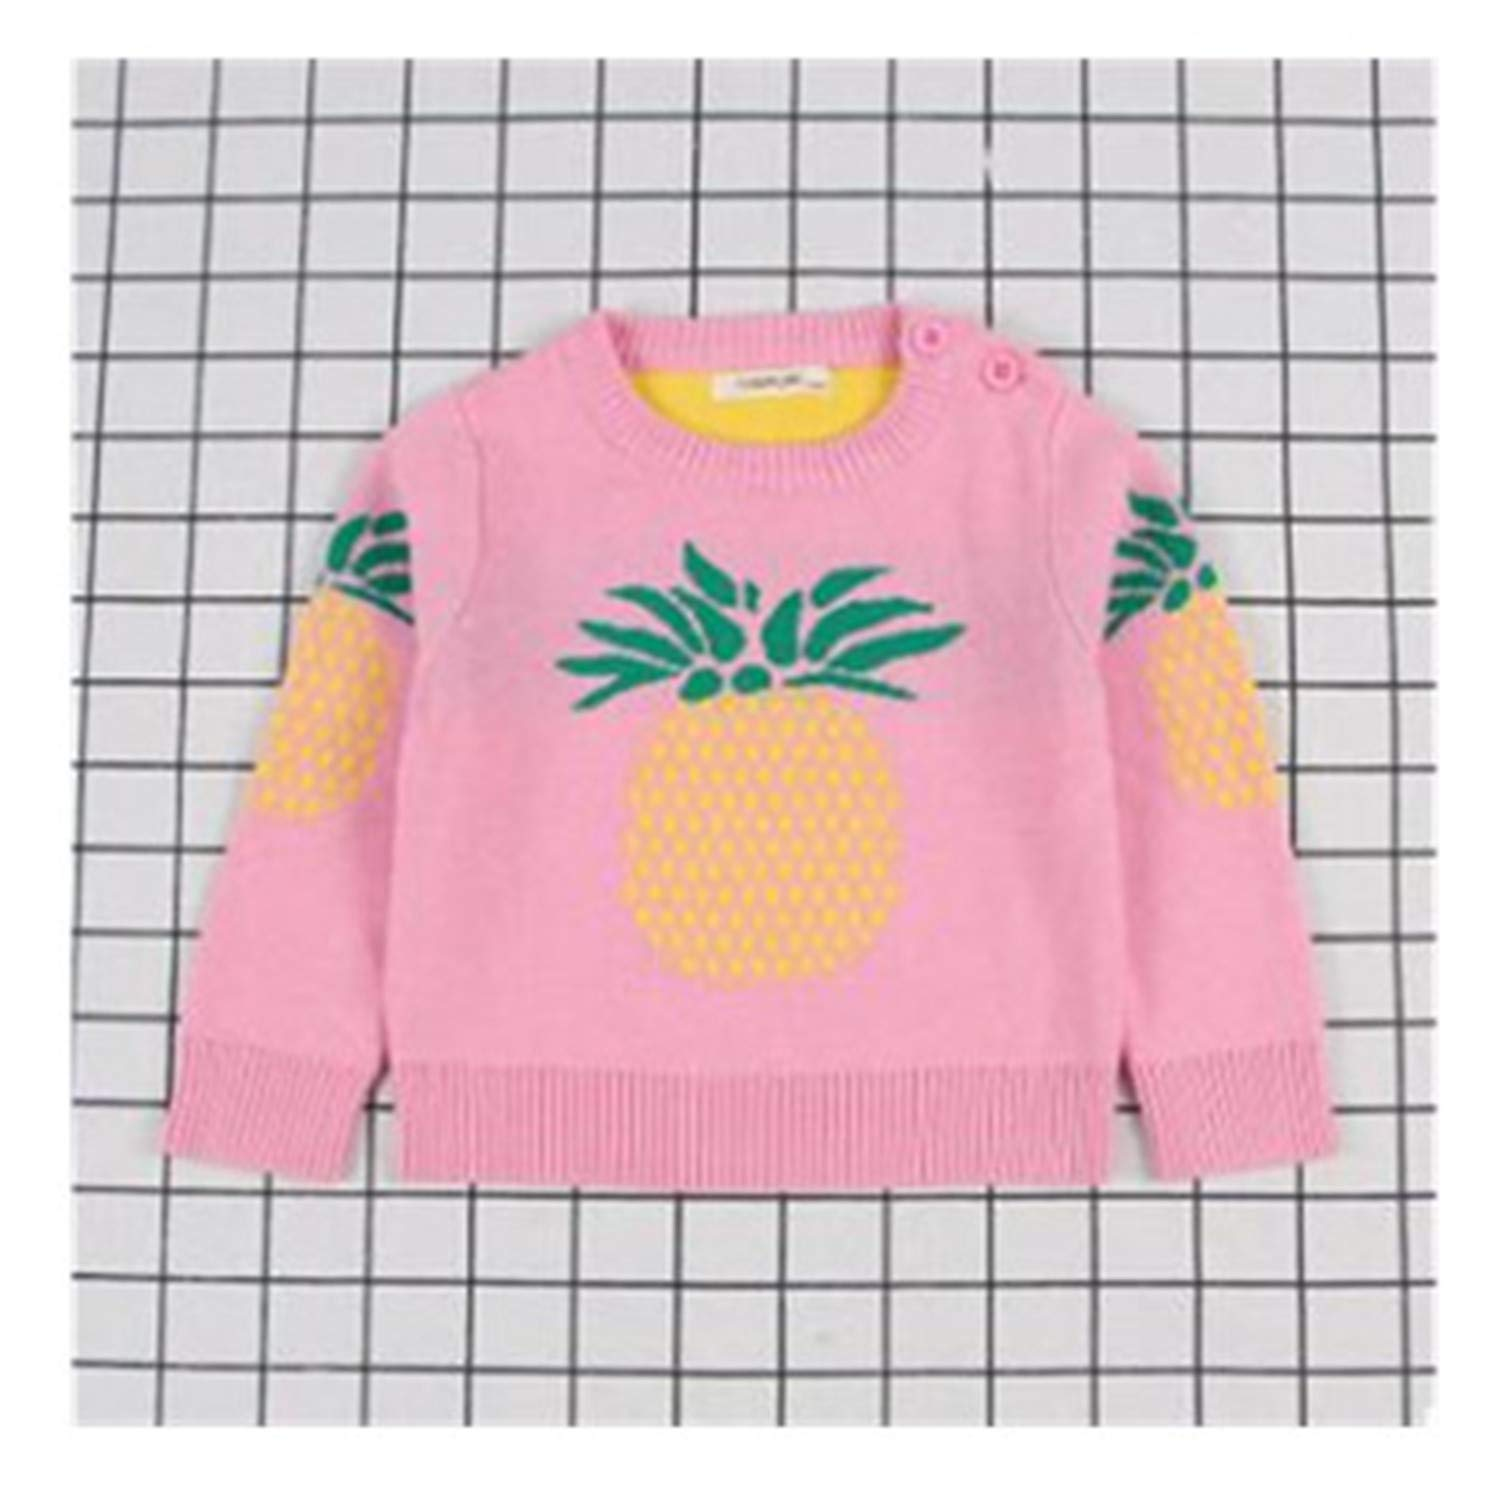 Gail Jonson Autumn New Sweater for Boys Child Pullover Pineapple Baby Girls Clothes Knit Sweater Pink As Pic 3T